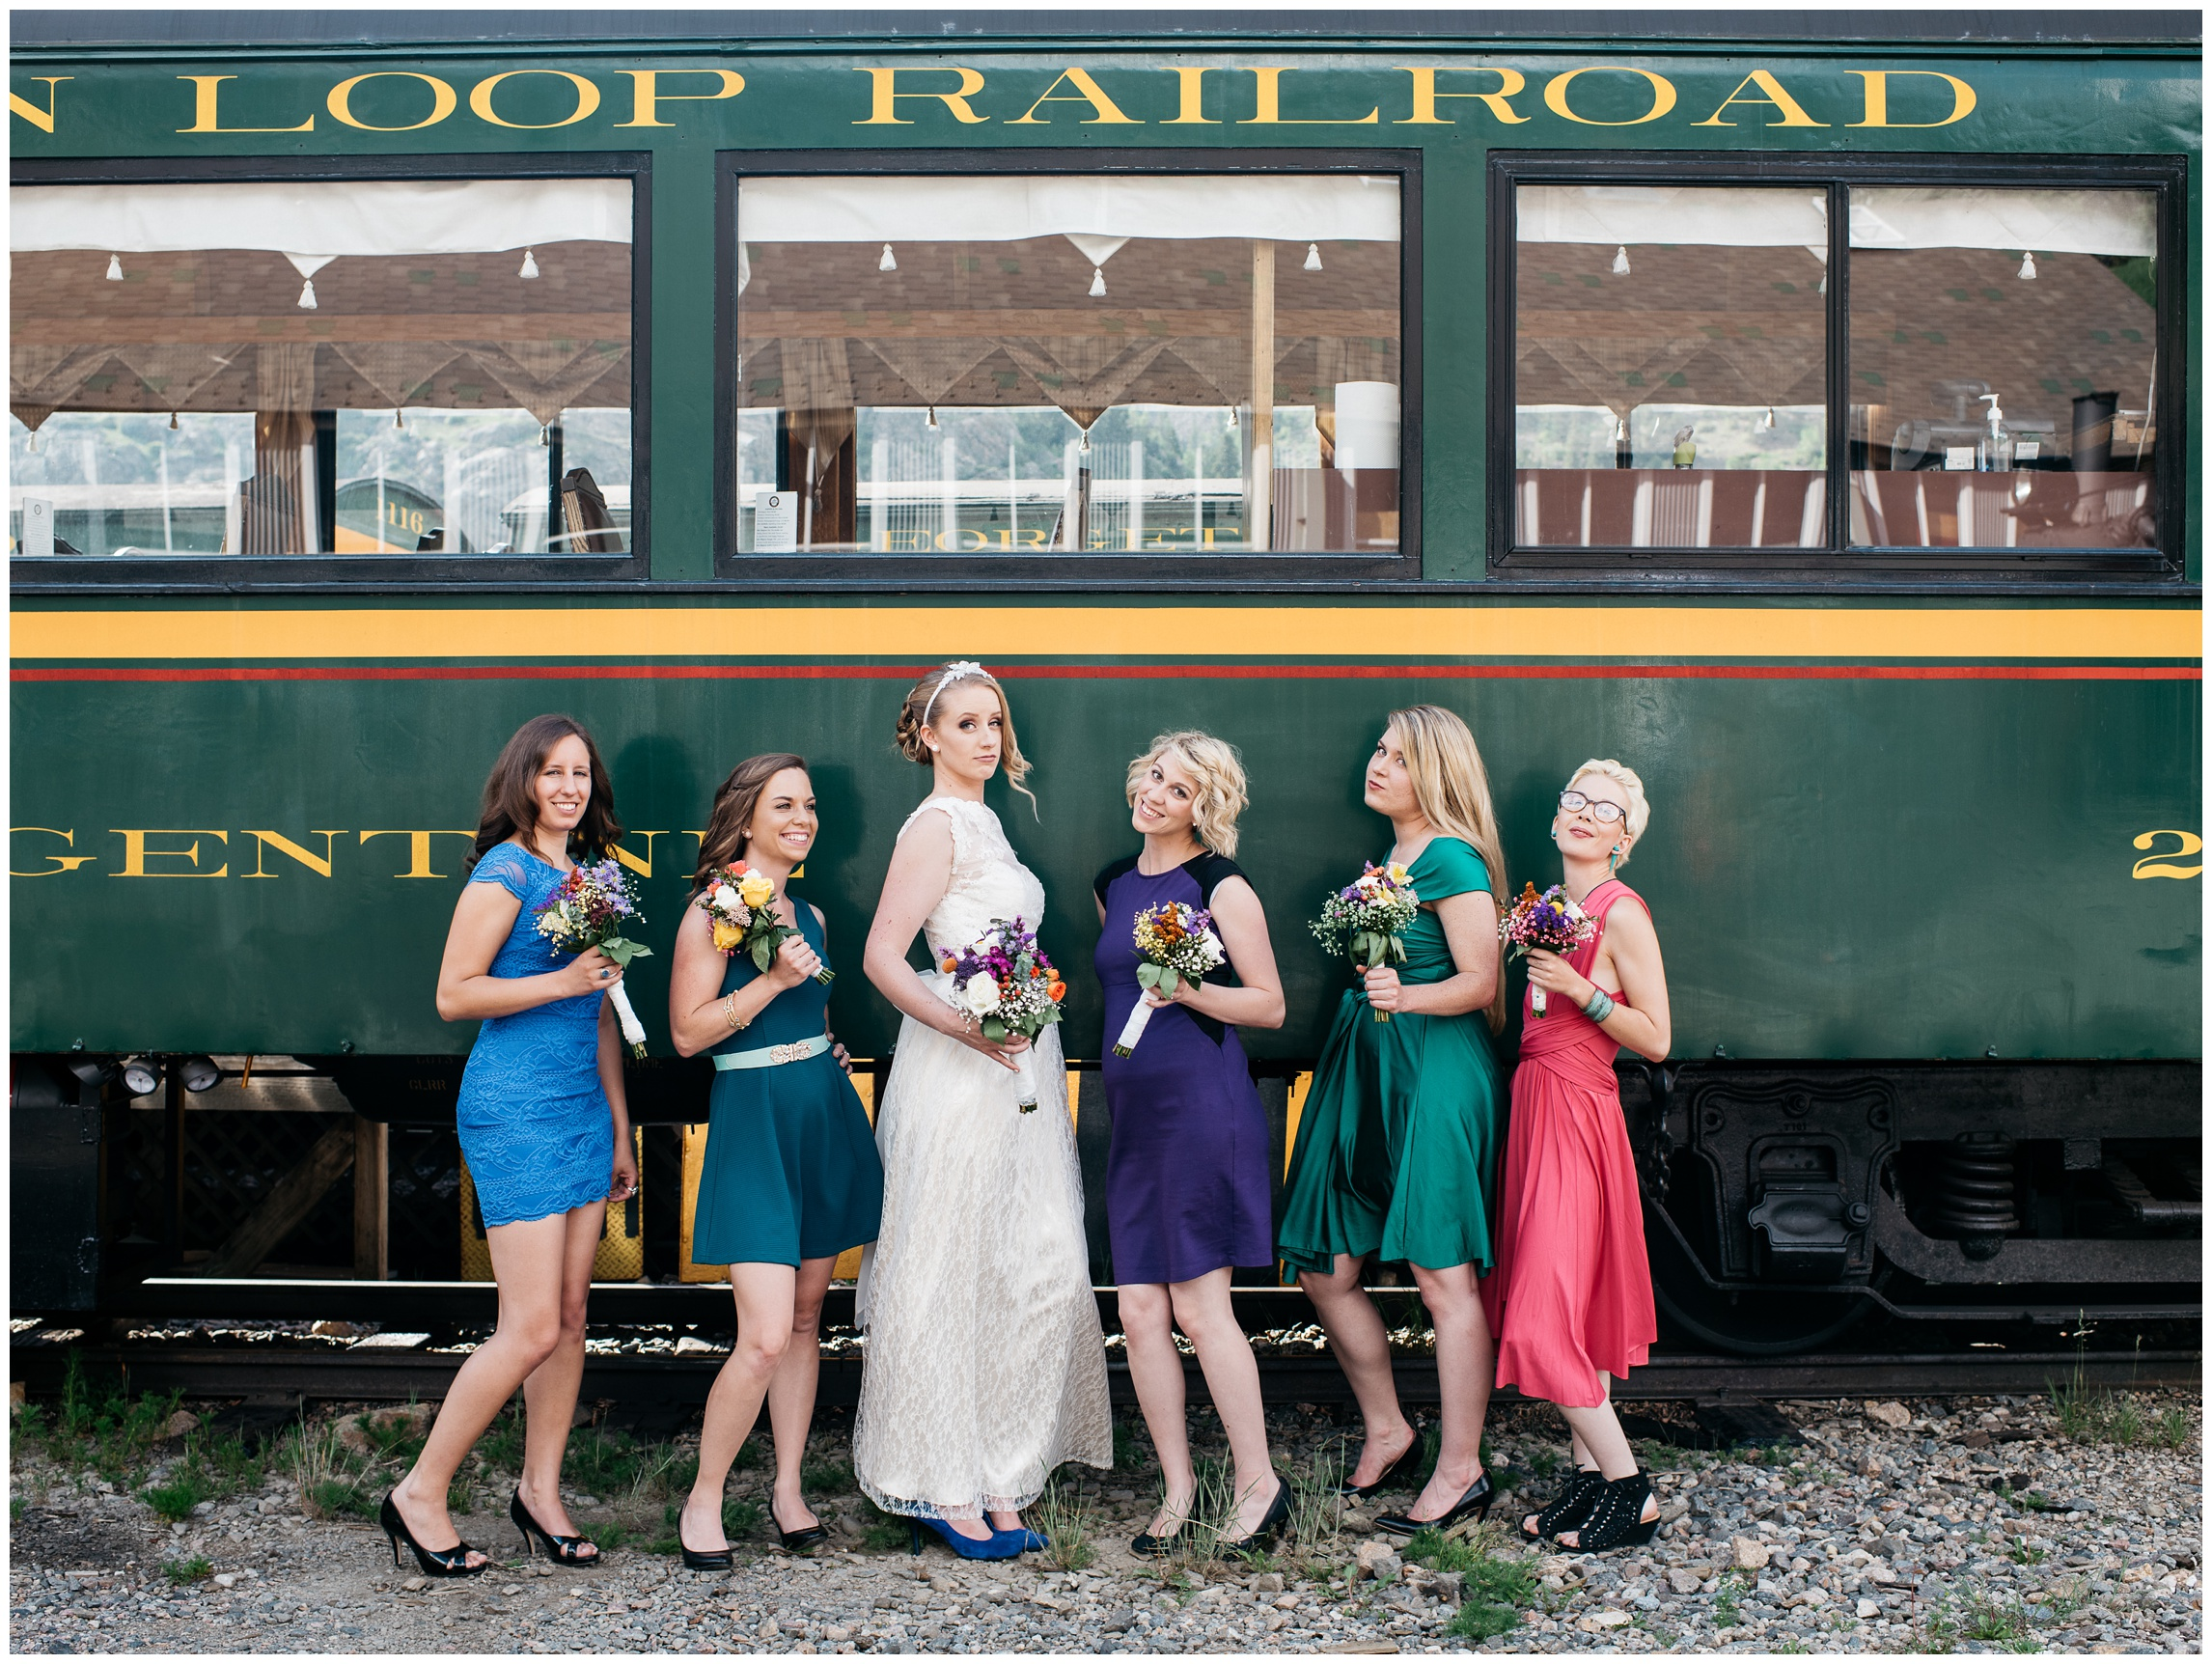 Bridesmaids and a bride in front of a historic train in Georgetown, Colorado. Wedding photography by Sonja Salzburg of Sonja K Photography.